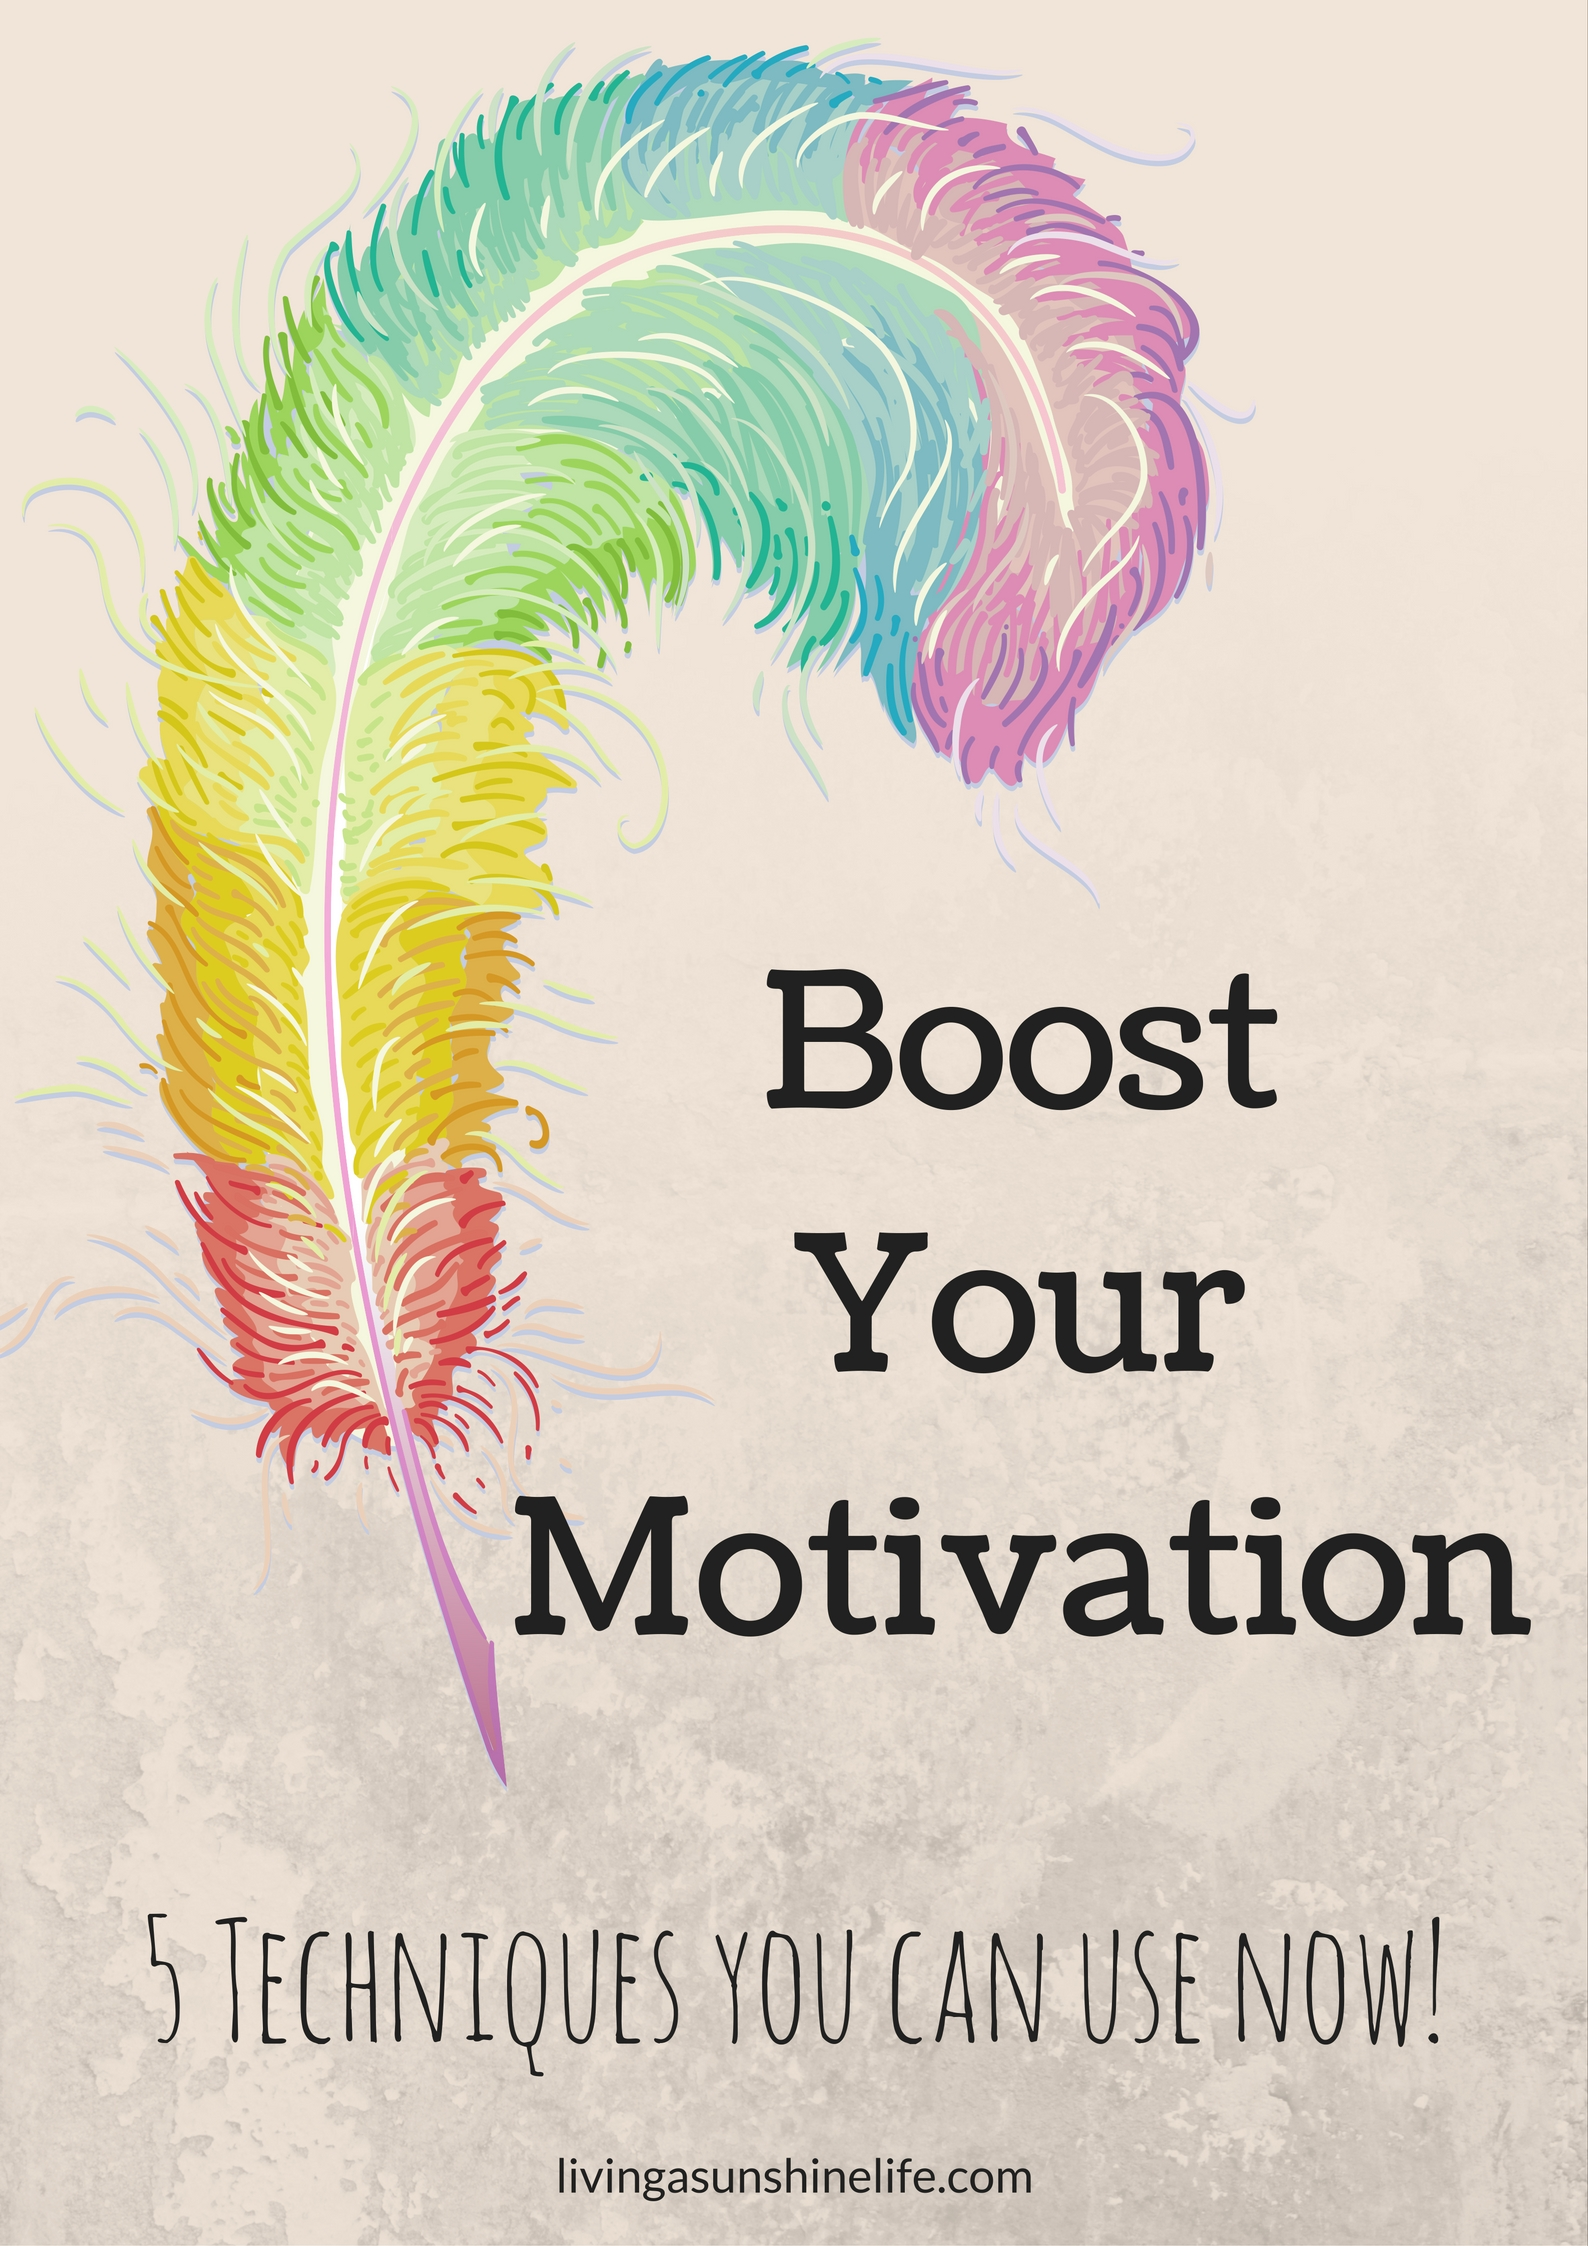 Five Ways to Boost Your Motivation